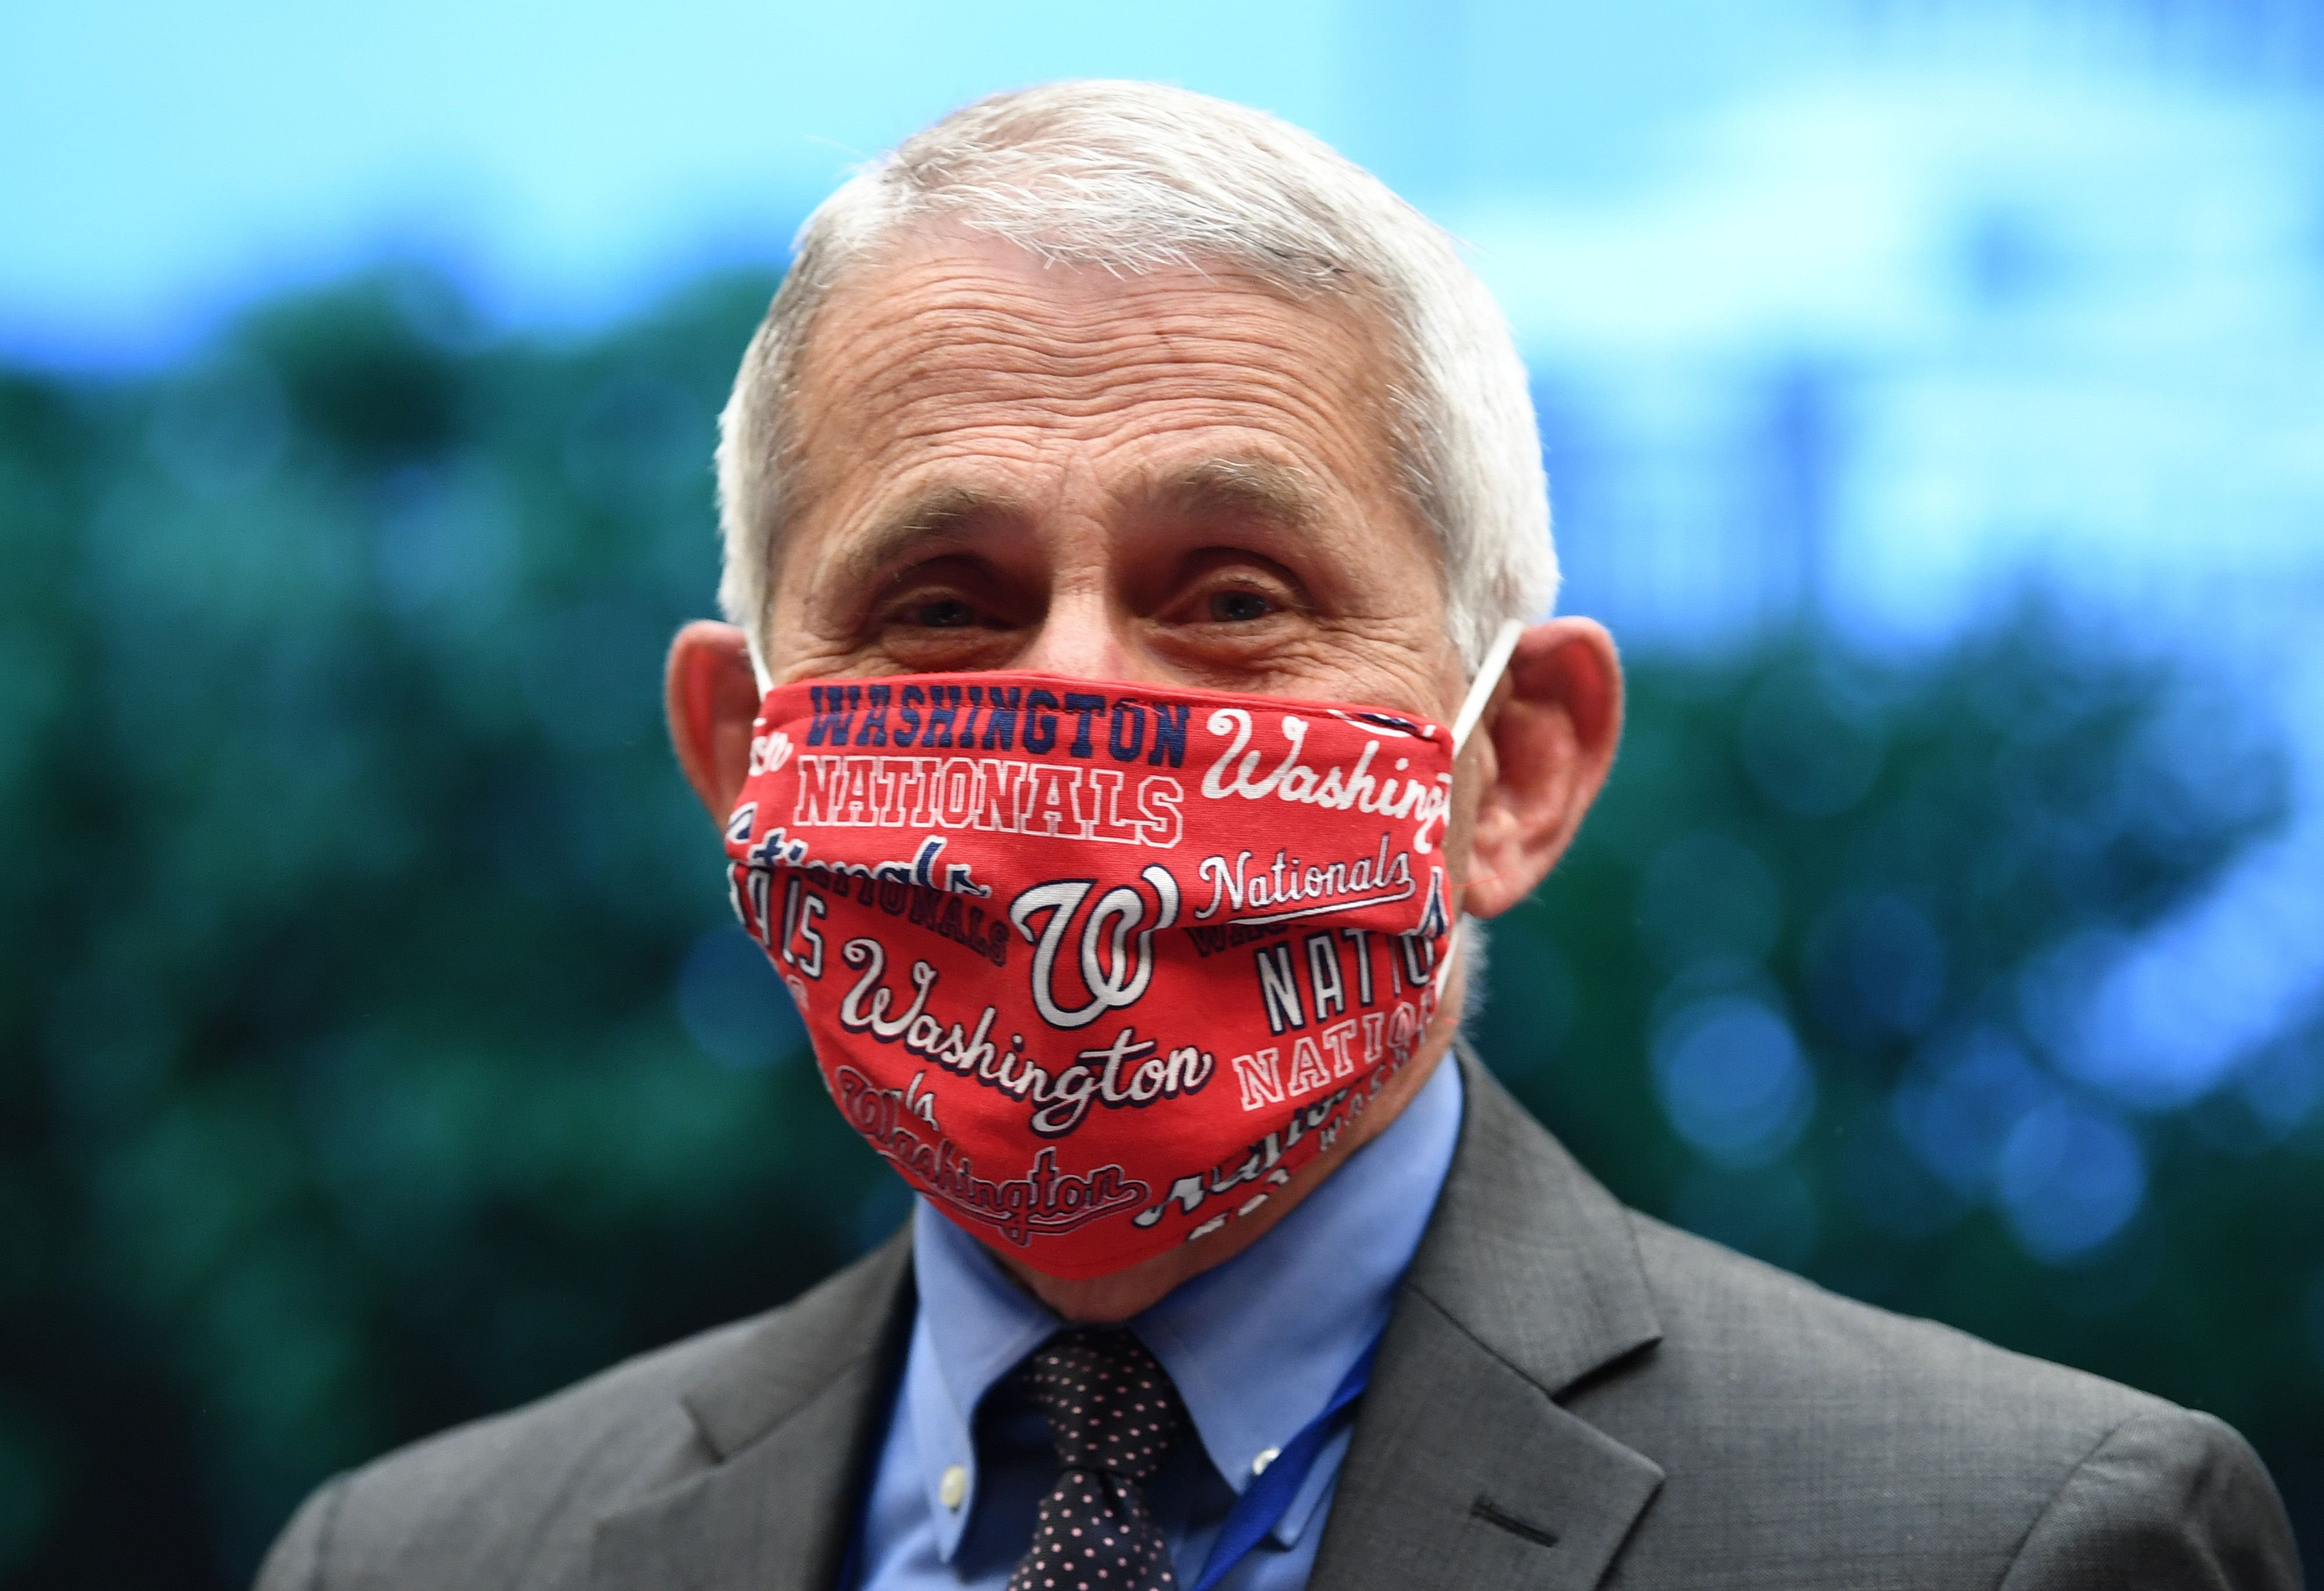 Dr. Anthony Fauci wore a face mask with logos for the Washington Nationals at a meeting for the House Committee on Capitol Hill on June 23, 2020, in Washington, DC | Photo: Getty Images